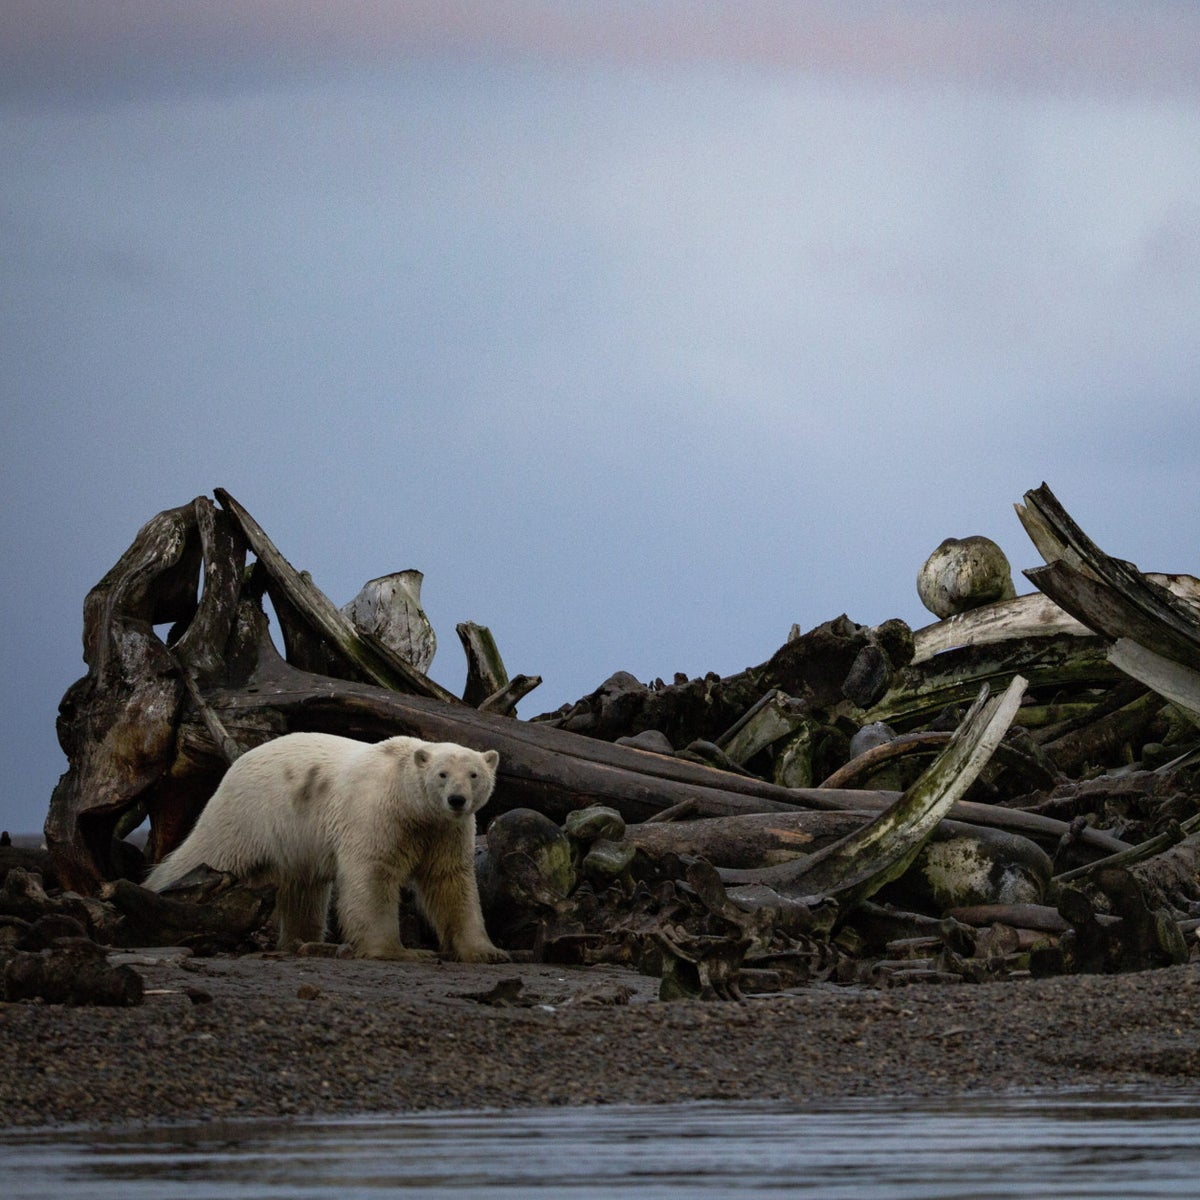 A polar bear near a pile of whale bones placed by villagers just outside the town of Kaktovik, Alaska, September 11, 2016.